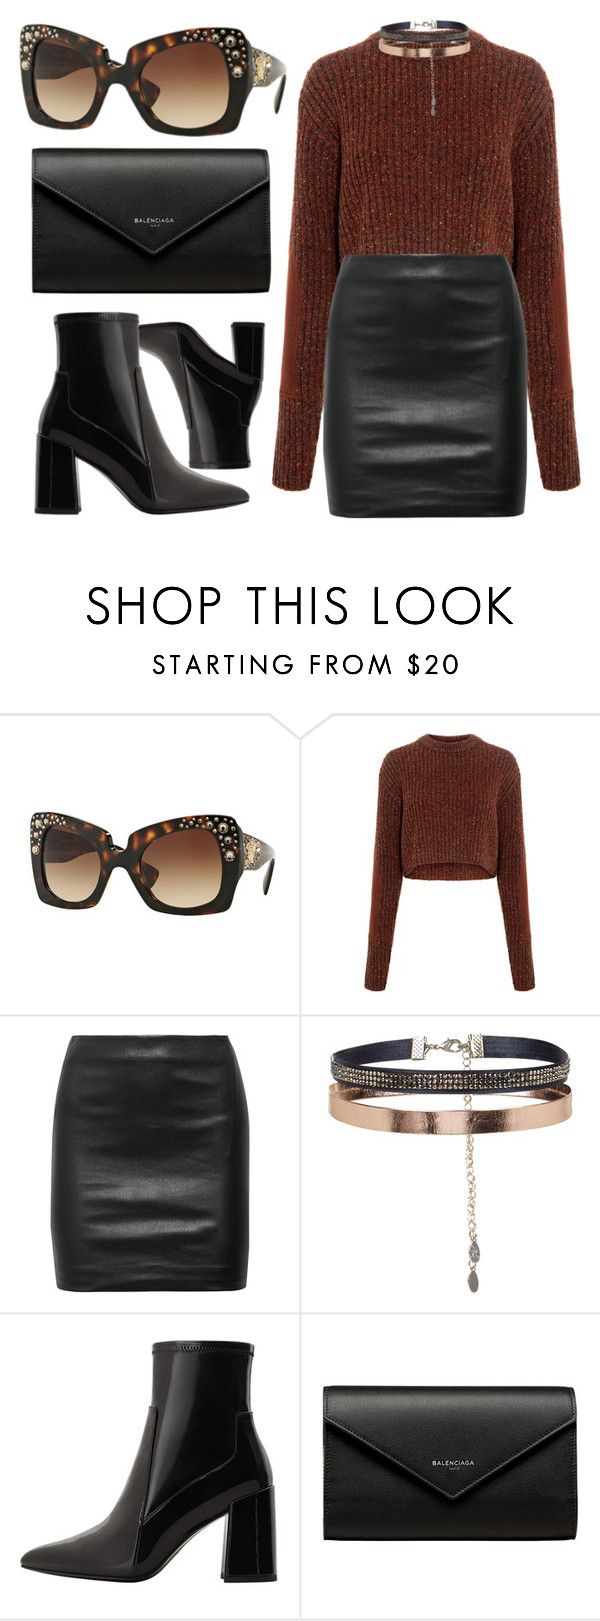 """""""Versace Sunglasses"""" by smartbuyglasses-uk ❤ liked on Polyvore featuring Versace, TIBI, The Row, Accessorize, MANGO, Balenciaga, black, versace and brown"""